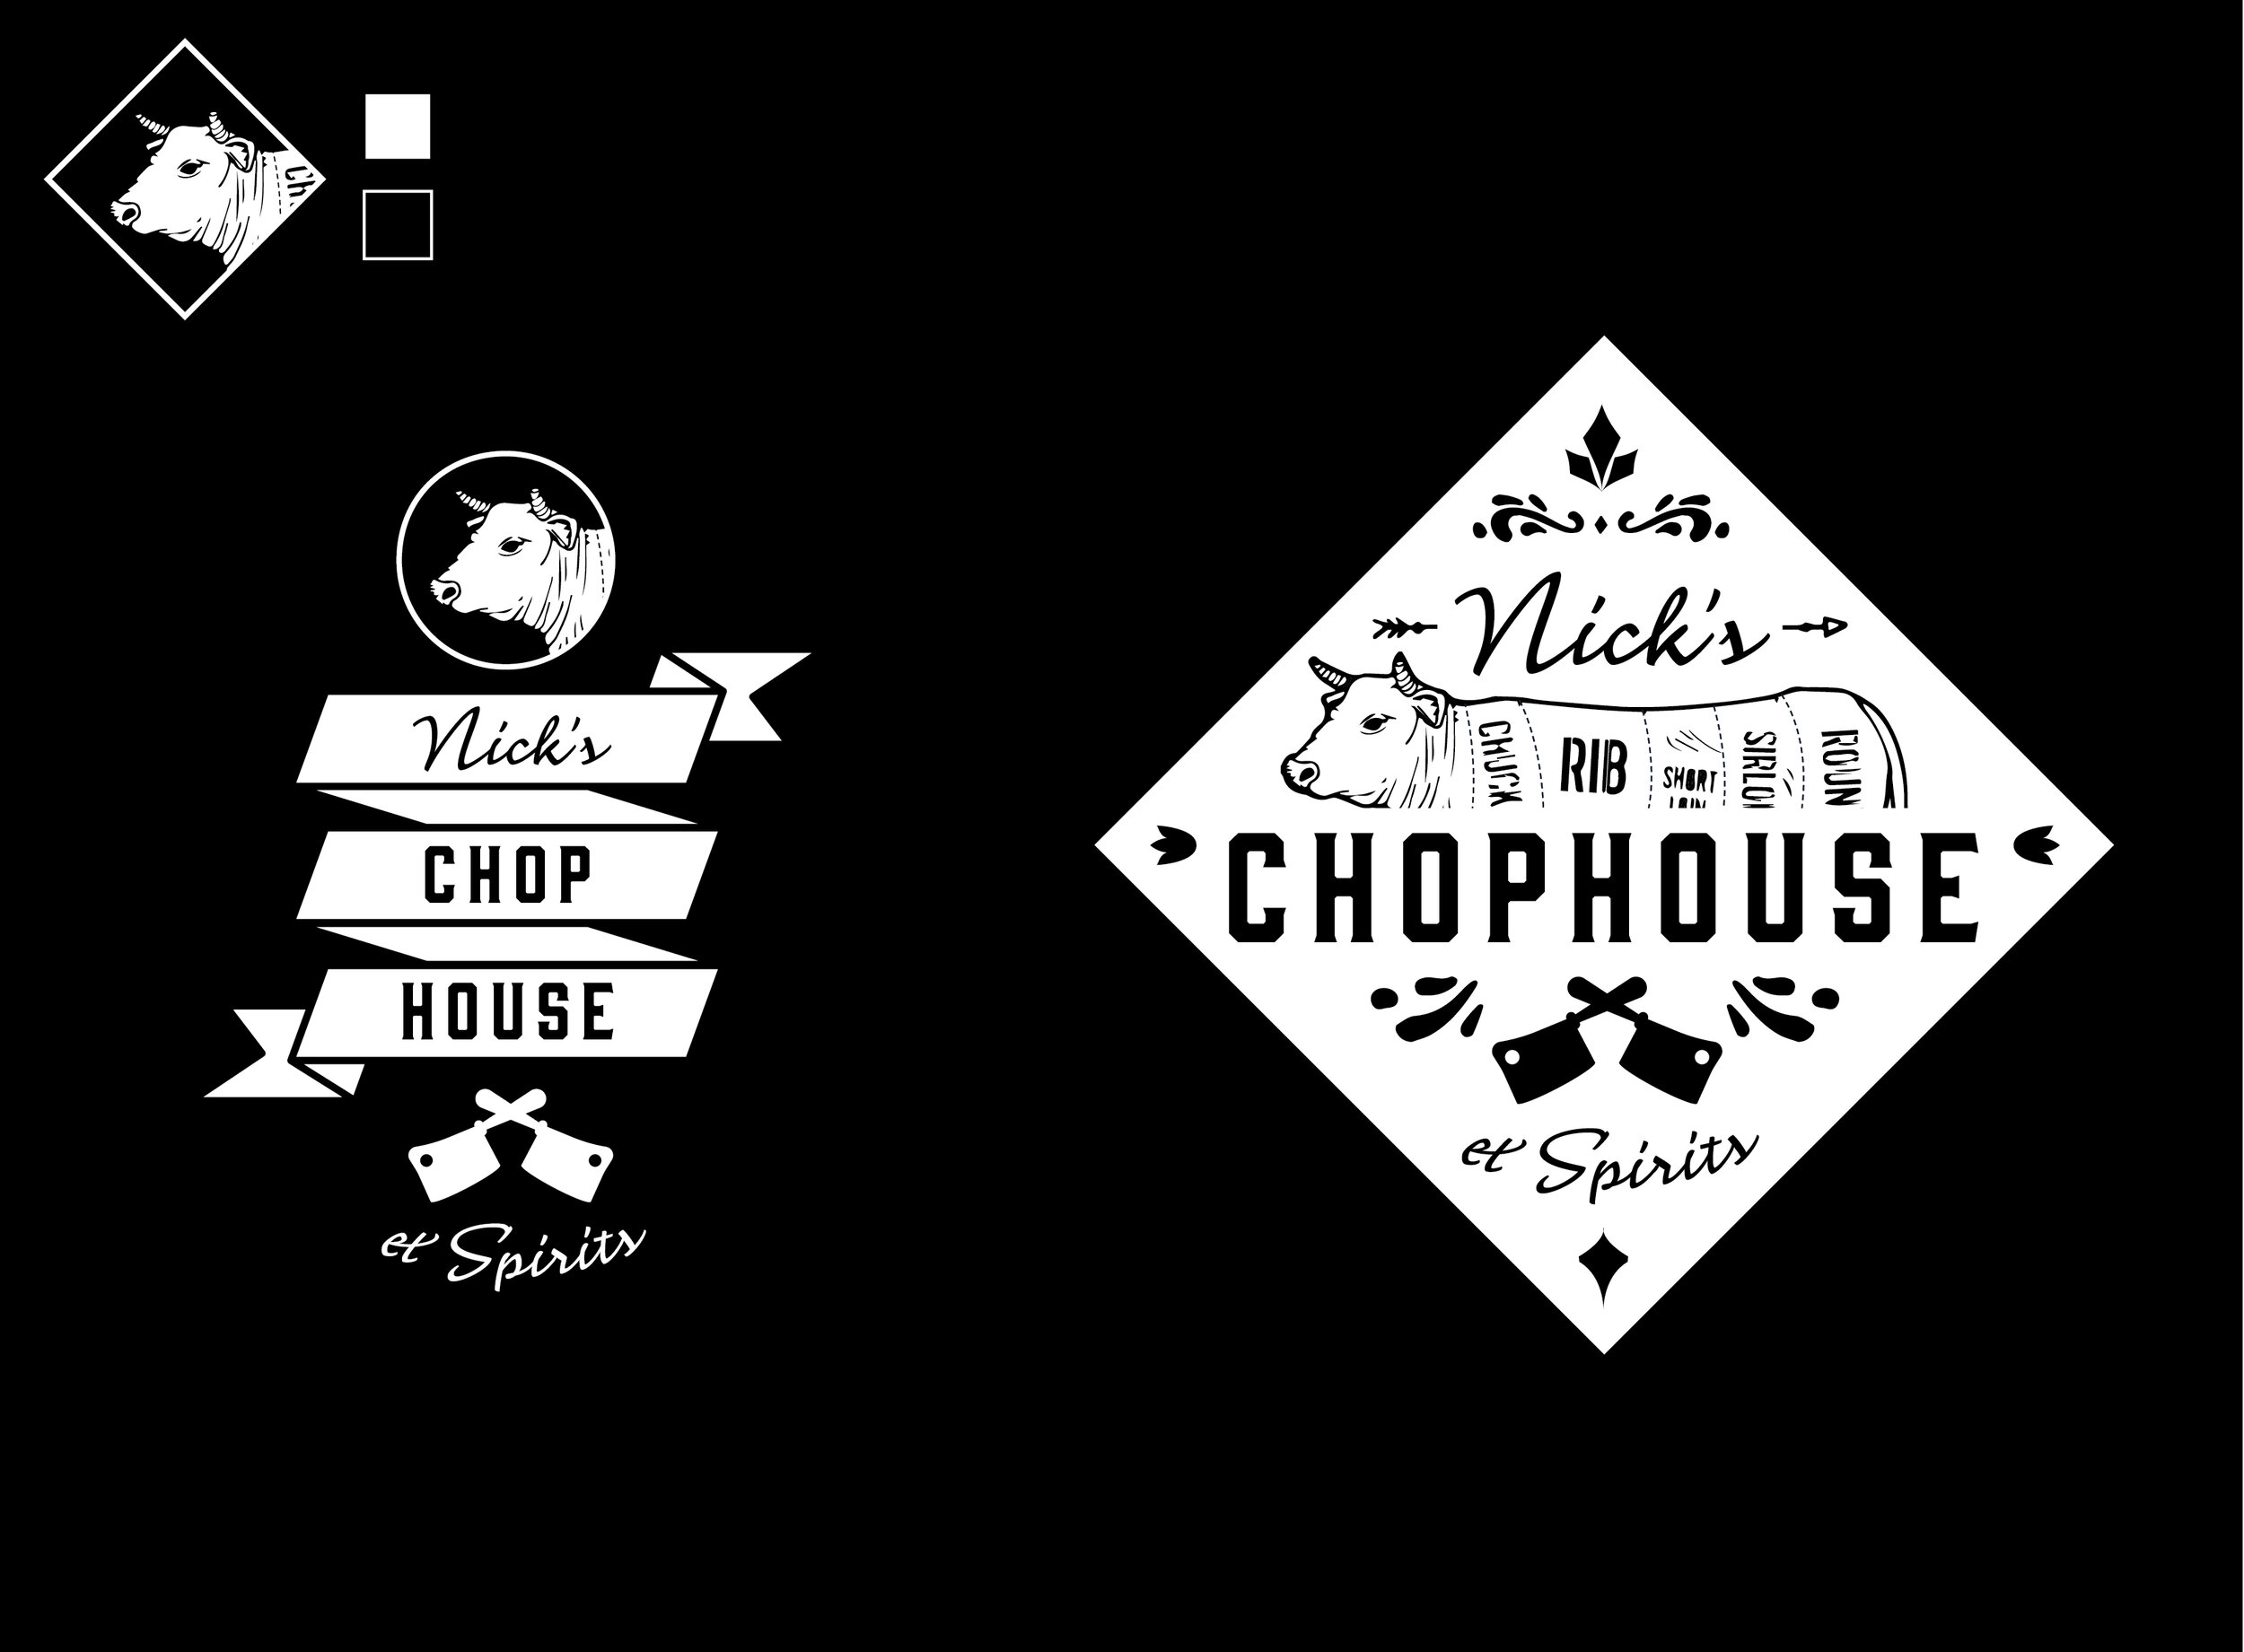 Chophouse-Logos-3-12.jpg